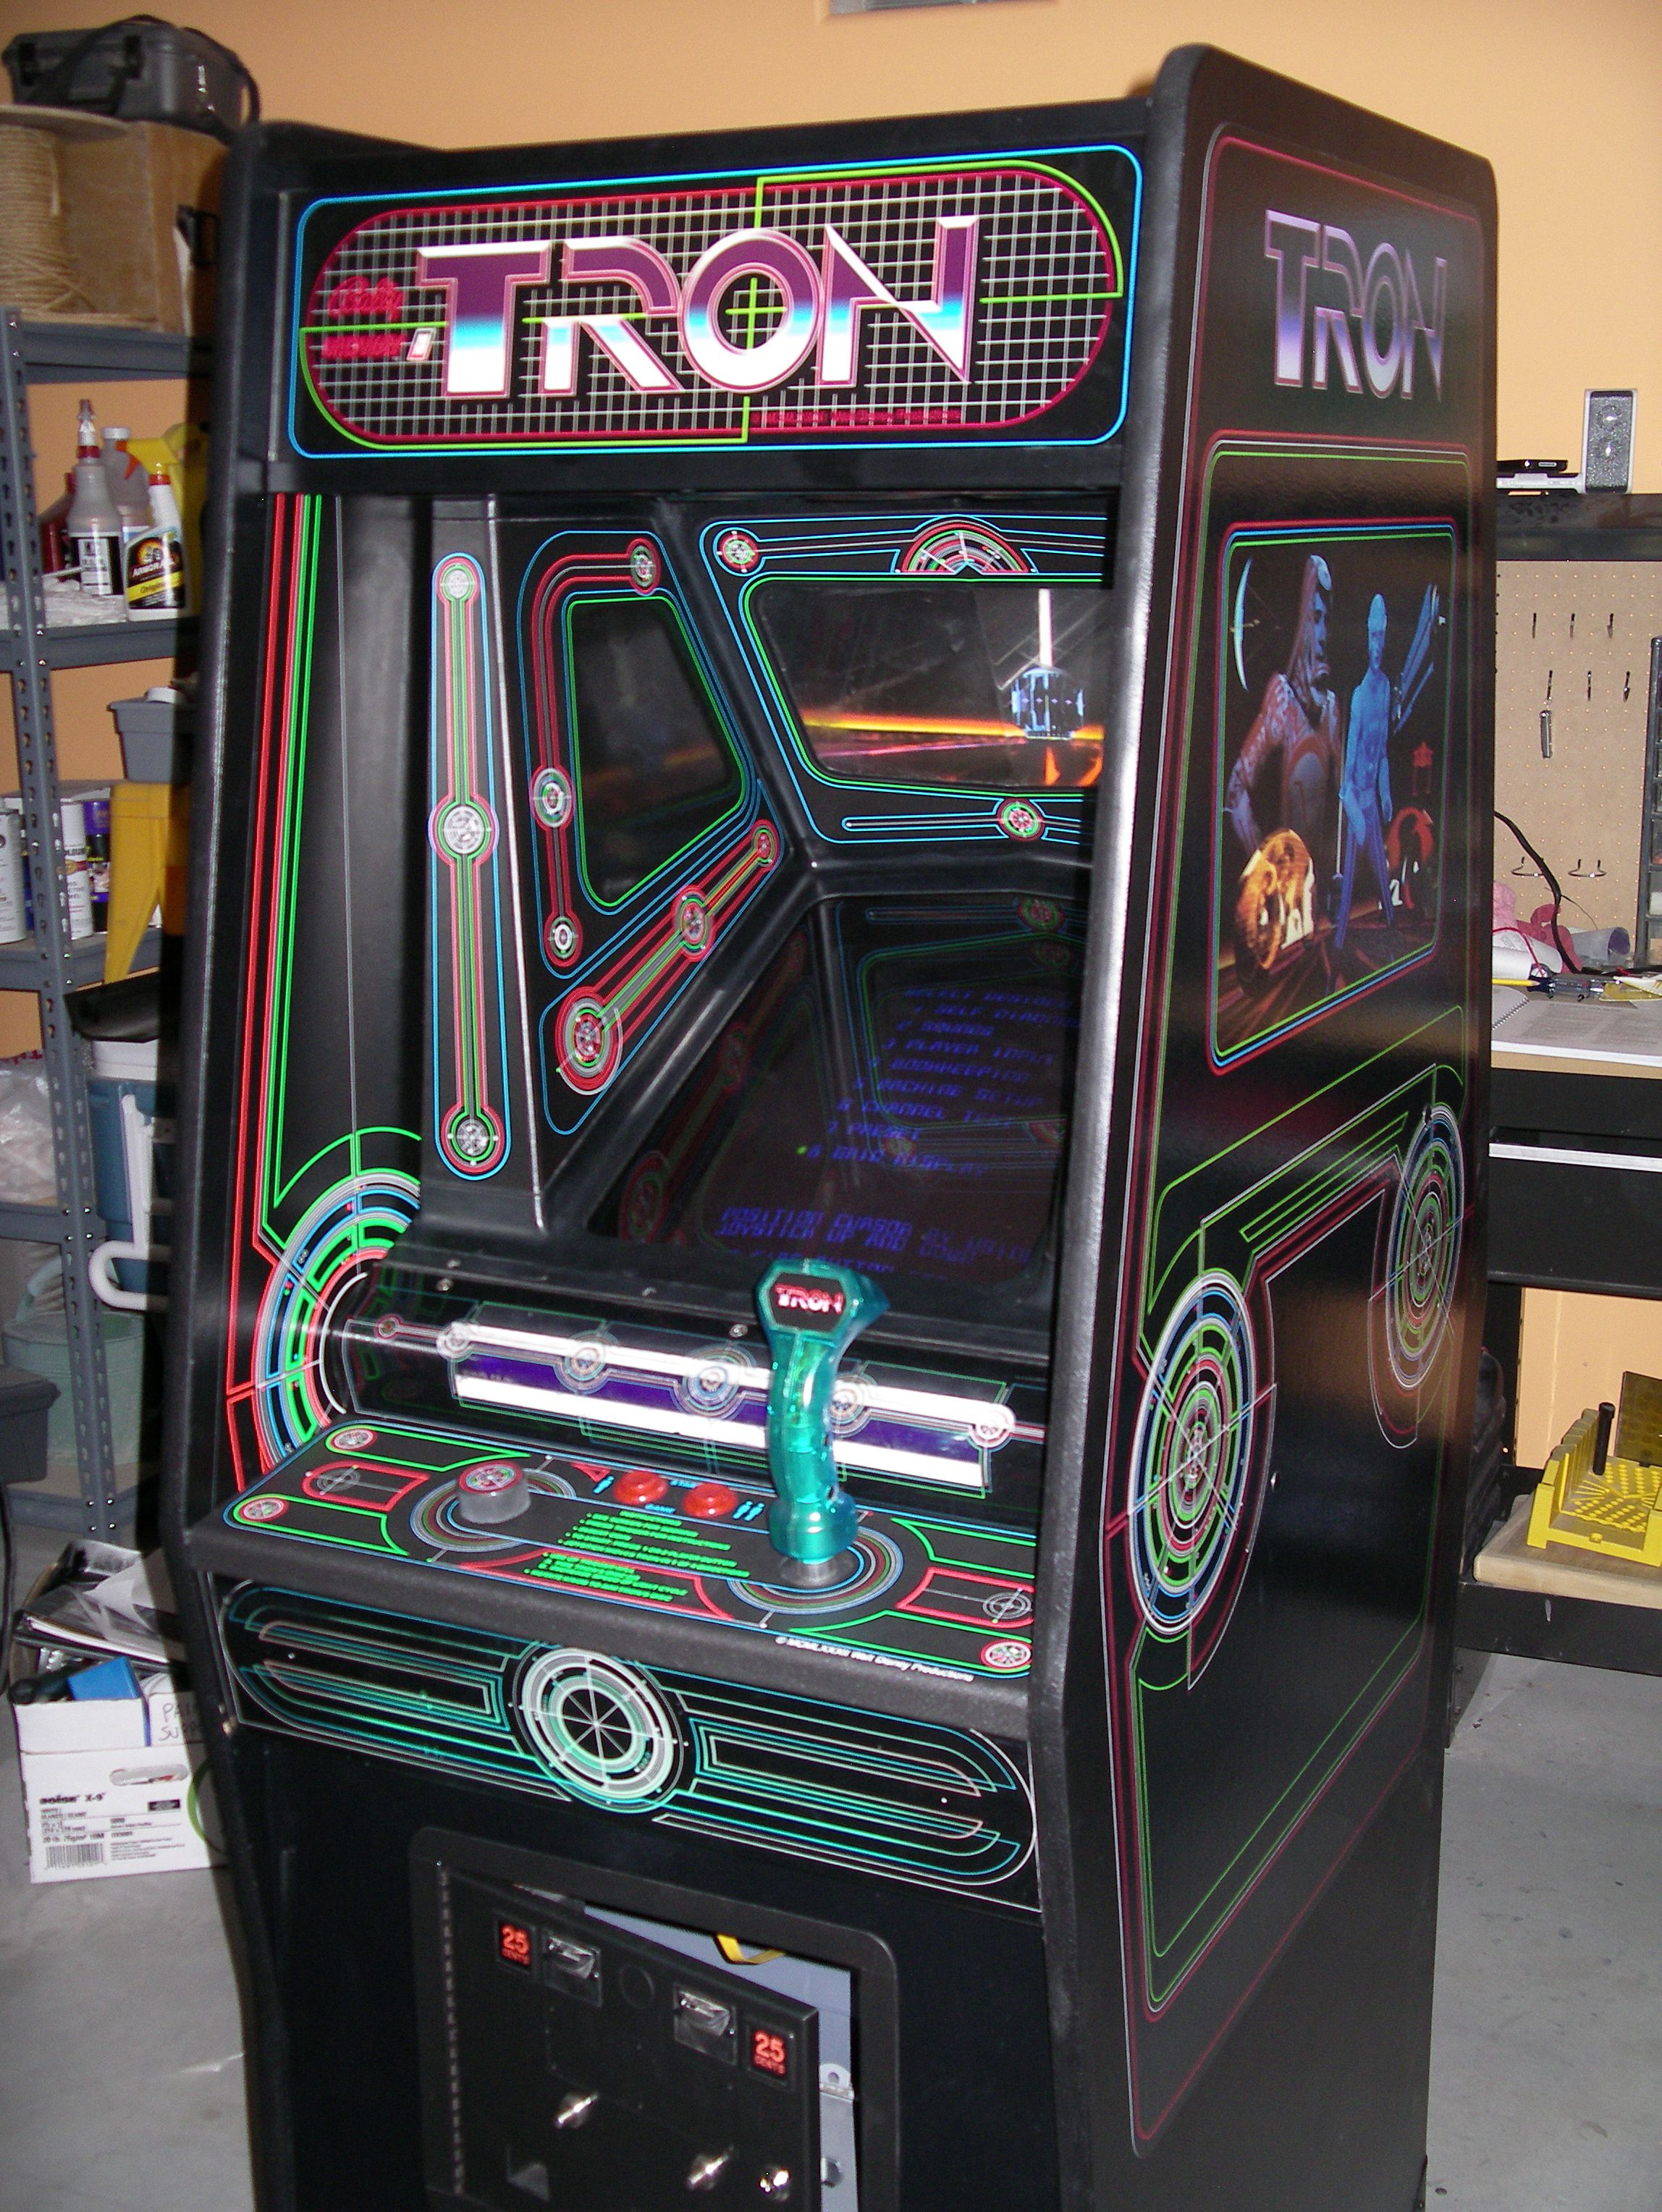 TRON - La borne d'arcade Les 4 minijeux sont : Course de Light Cycle. Grid Bugs. MCP Cone. Tanks.